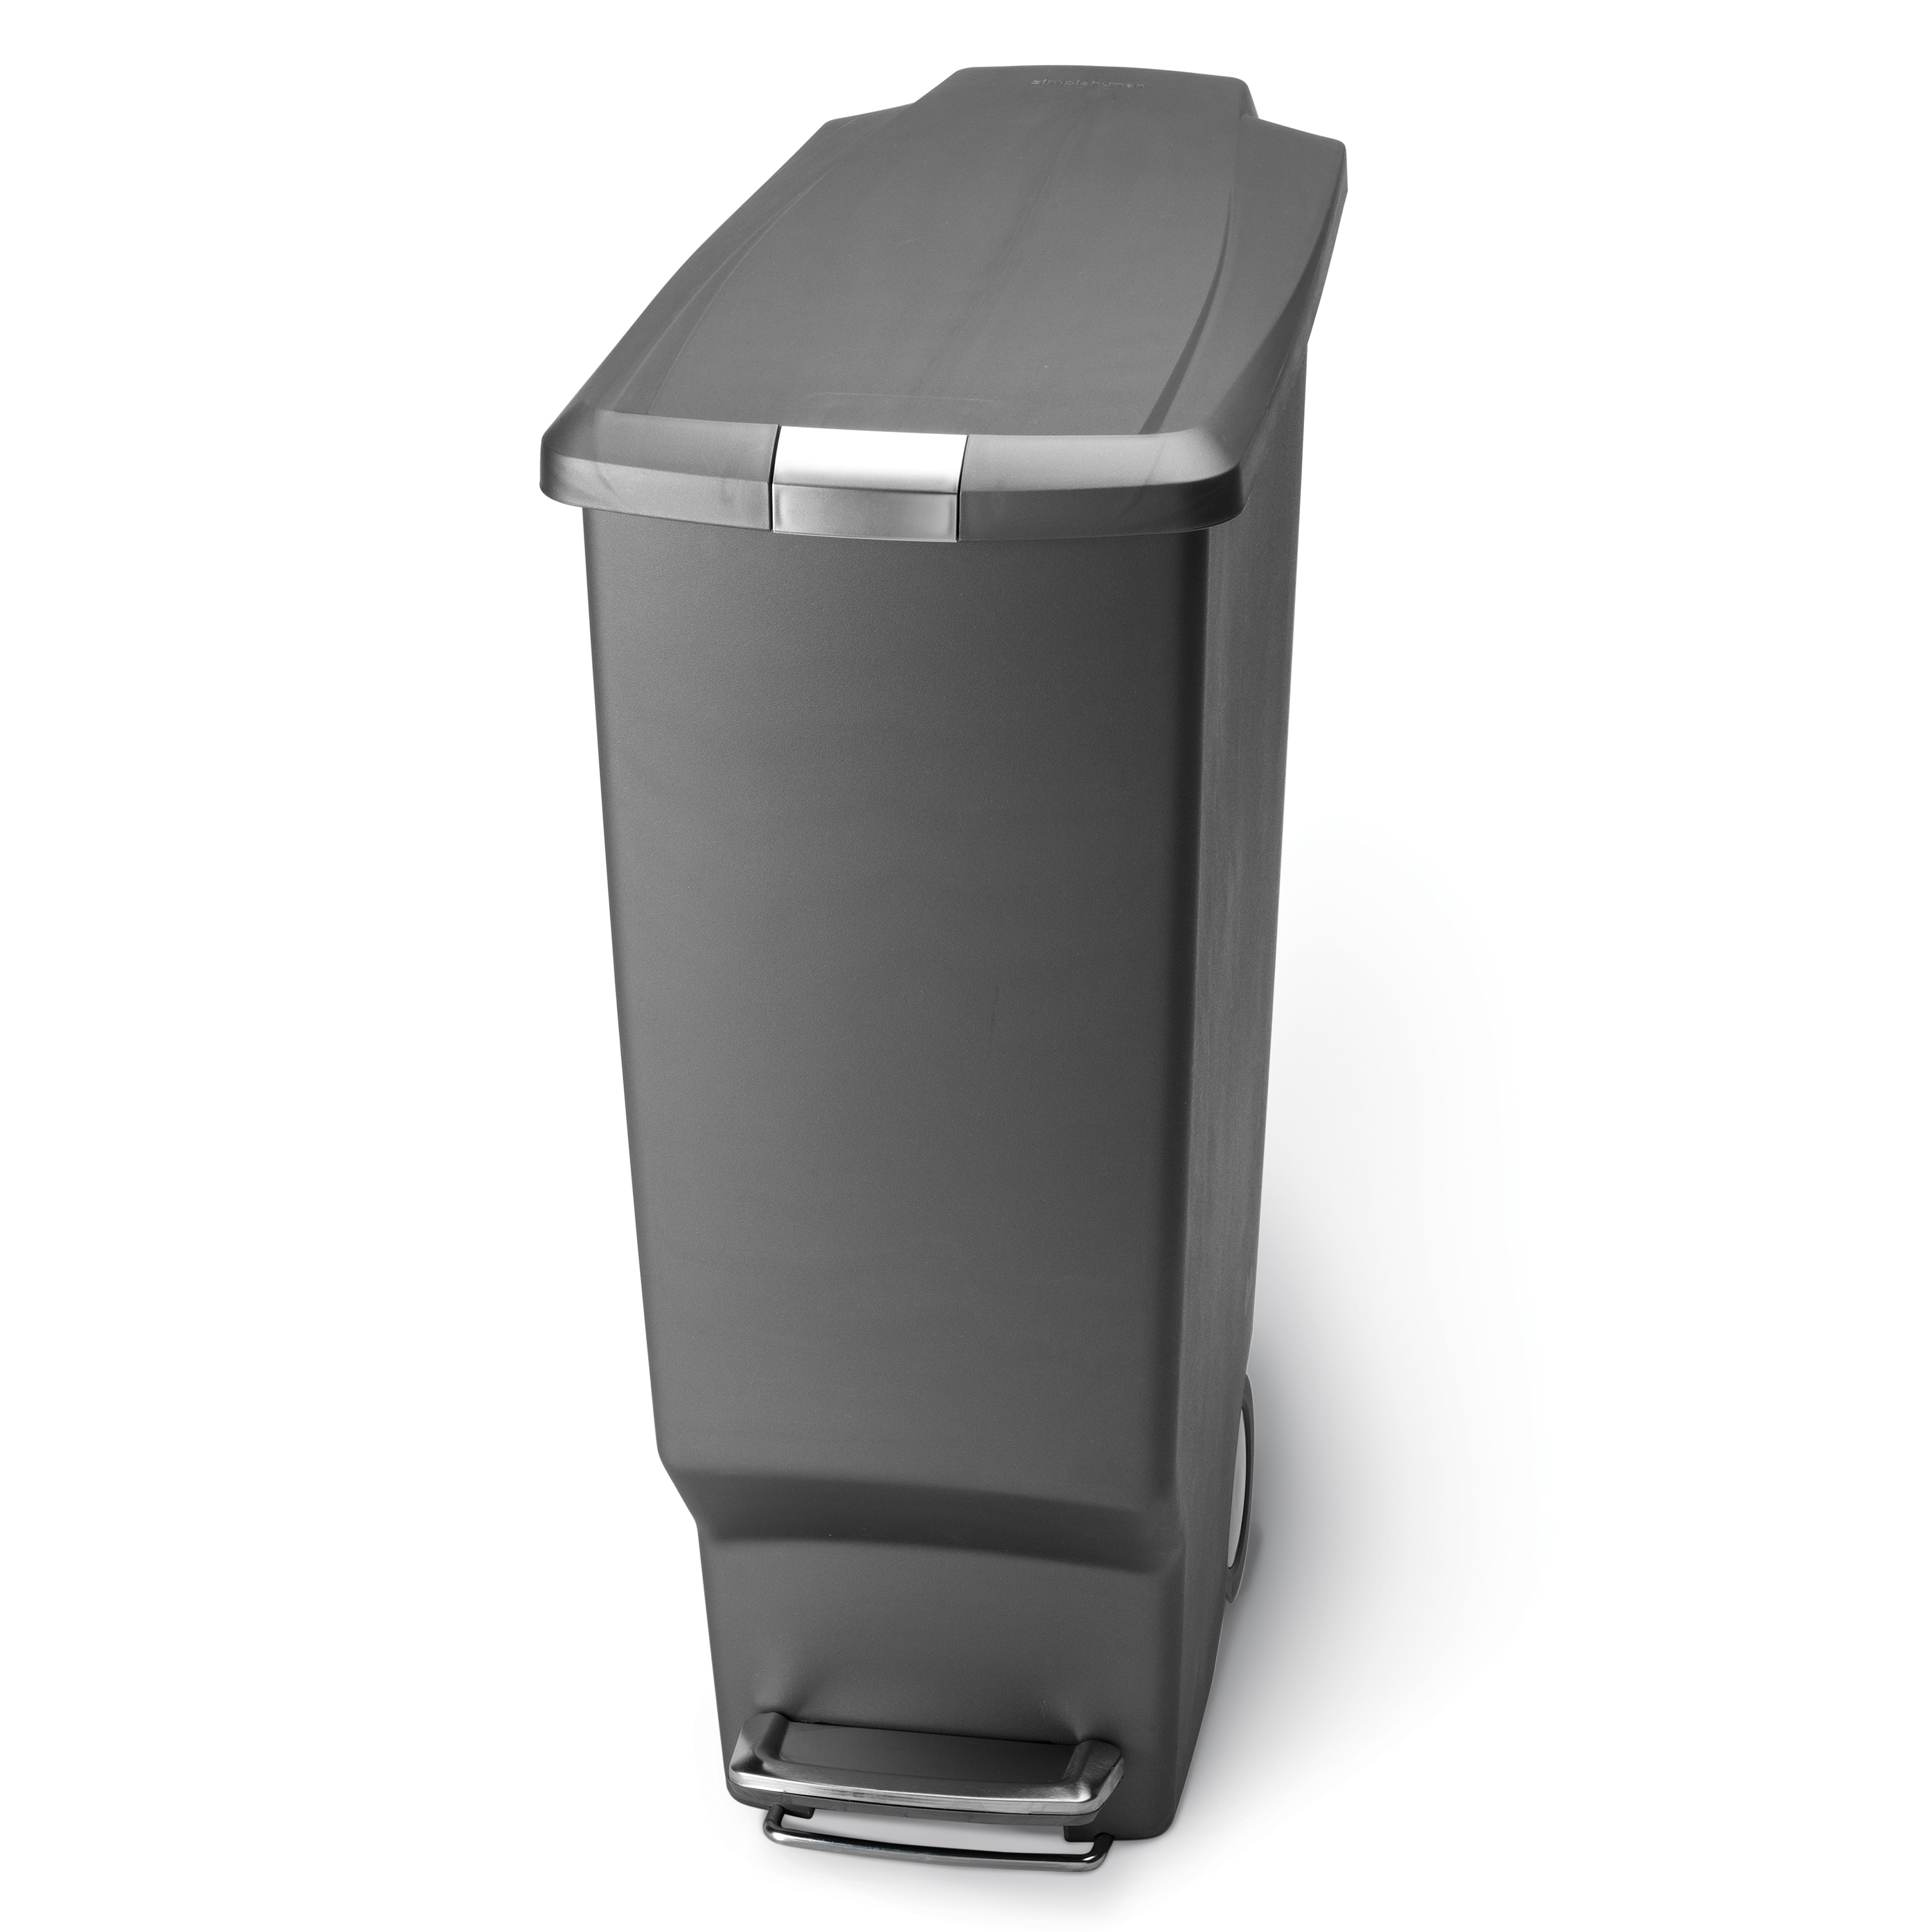 Simplehuman 40 Litre 10.6 Gallon Slim Step Trash Can White by simplehuman